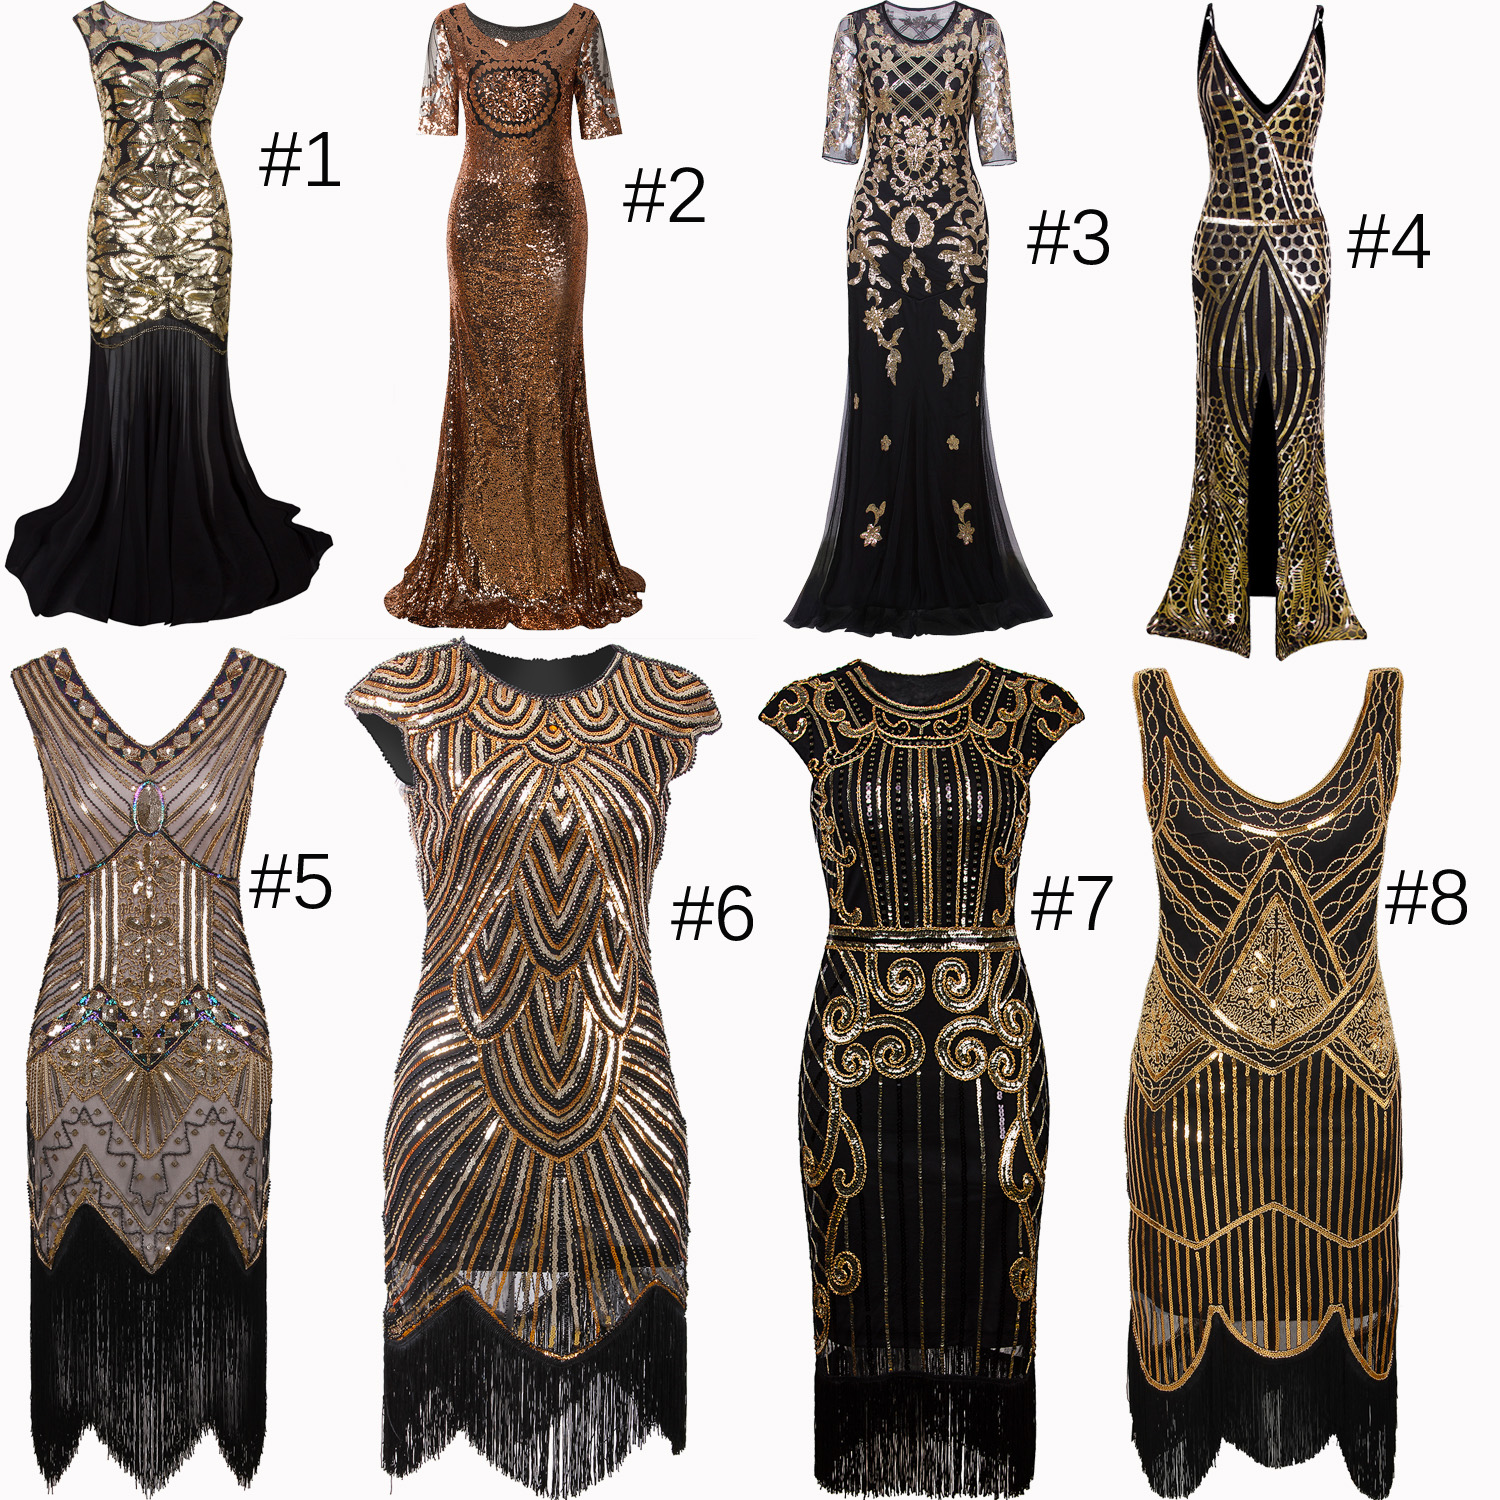 Details about Vintage Style 1920s Dress Flapper Costume 20s Evening Gown  Party Cosplay Dresses